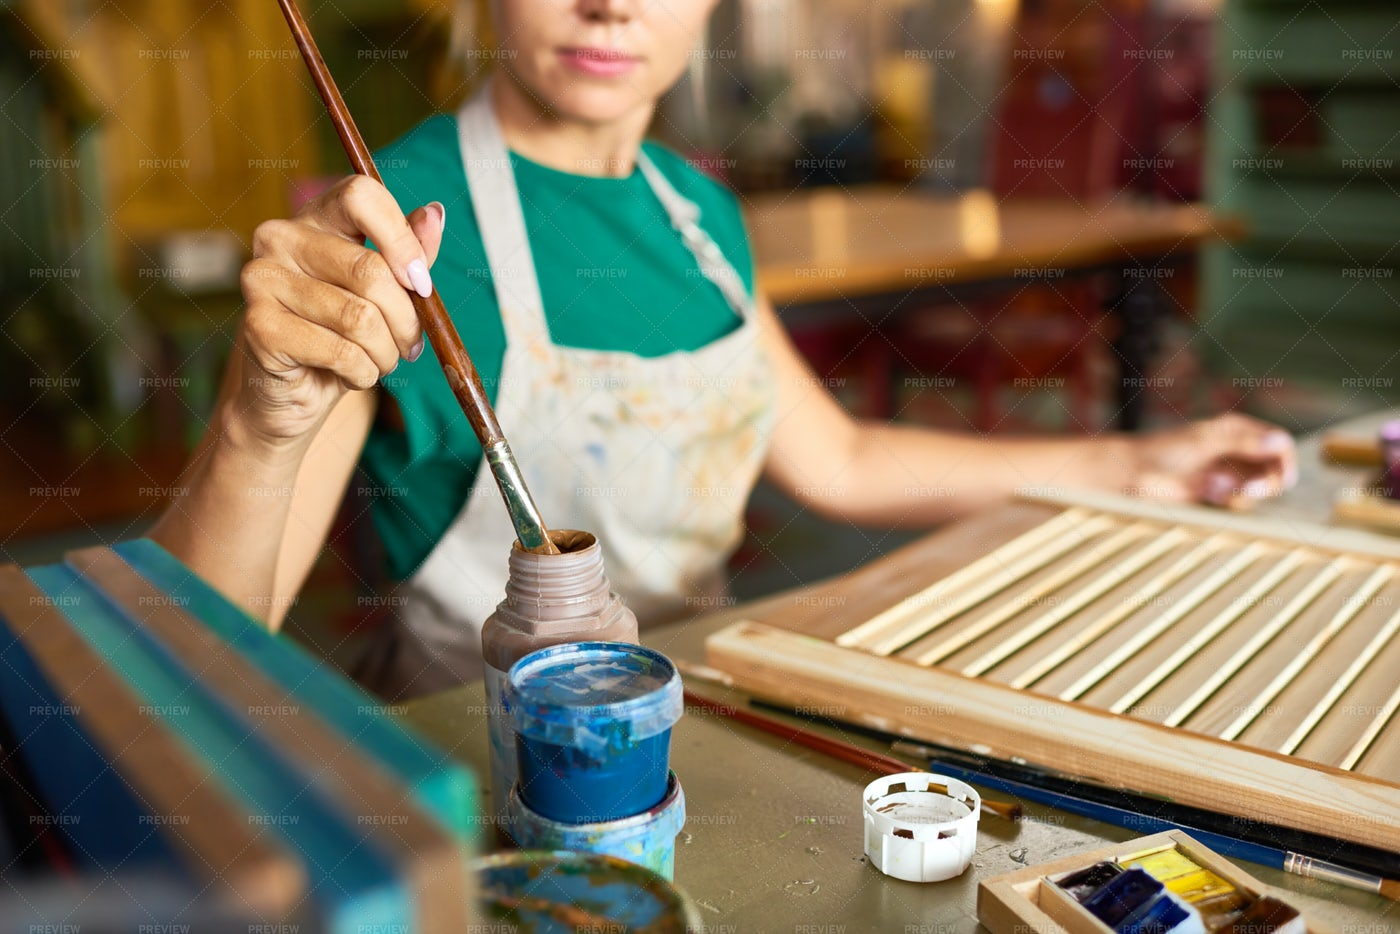 Young Woman Painting DIY Project In...: Stock Photos